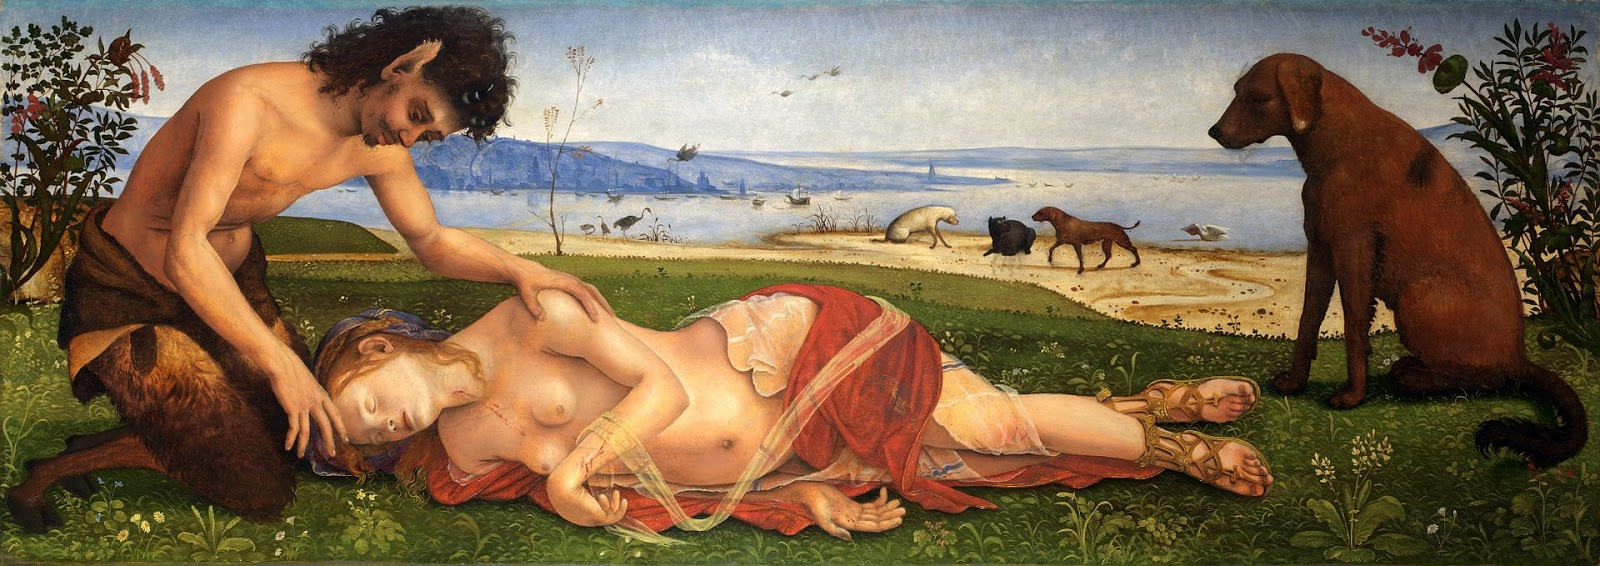 """Piero di Cosimo's painting depicting Procris taking a nap because of a severe headache she had trying to figure out who the hell Laelaps belonged to (seen on the right and in the back). The satyr by her side is asking her which myth they're in... Ovid's, Sophocles', Pherecydes, Hyginus, or if Herodotus somehow got involved too... """"Go away. I just want to sleep."""""""